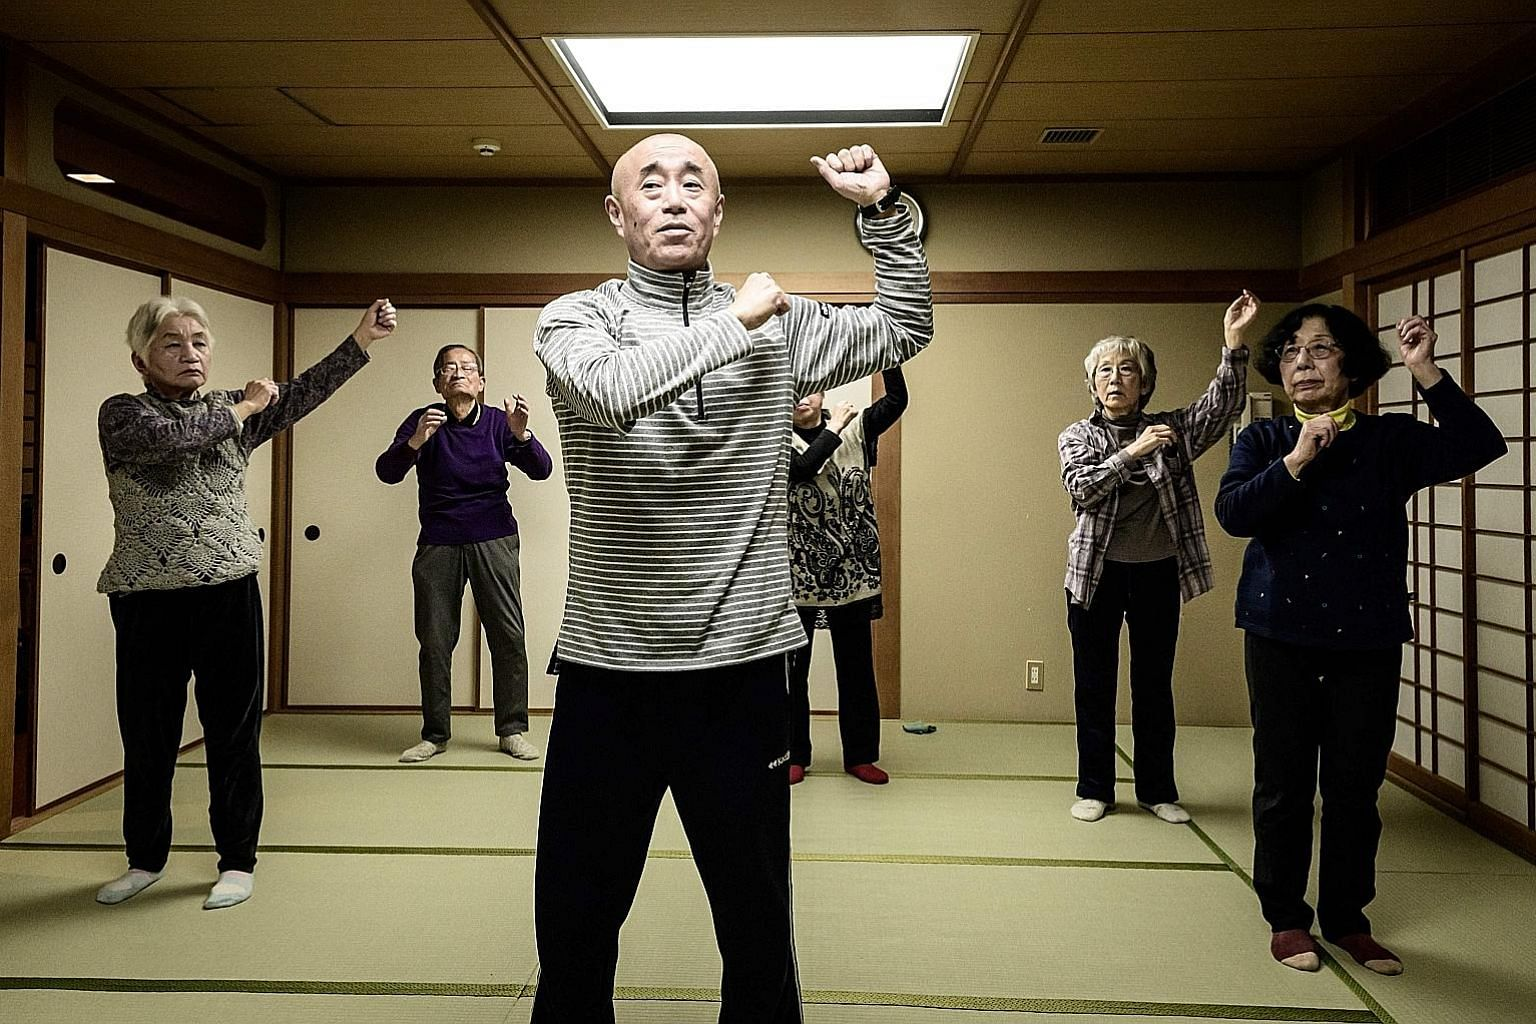 Judo therapist Taisuke Kasuya leading seniors in judo-based exercises at a community centre in Tokyo.